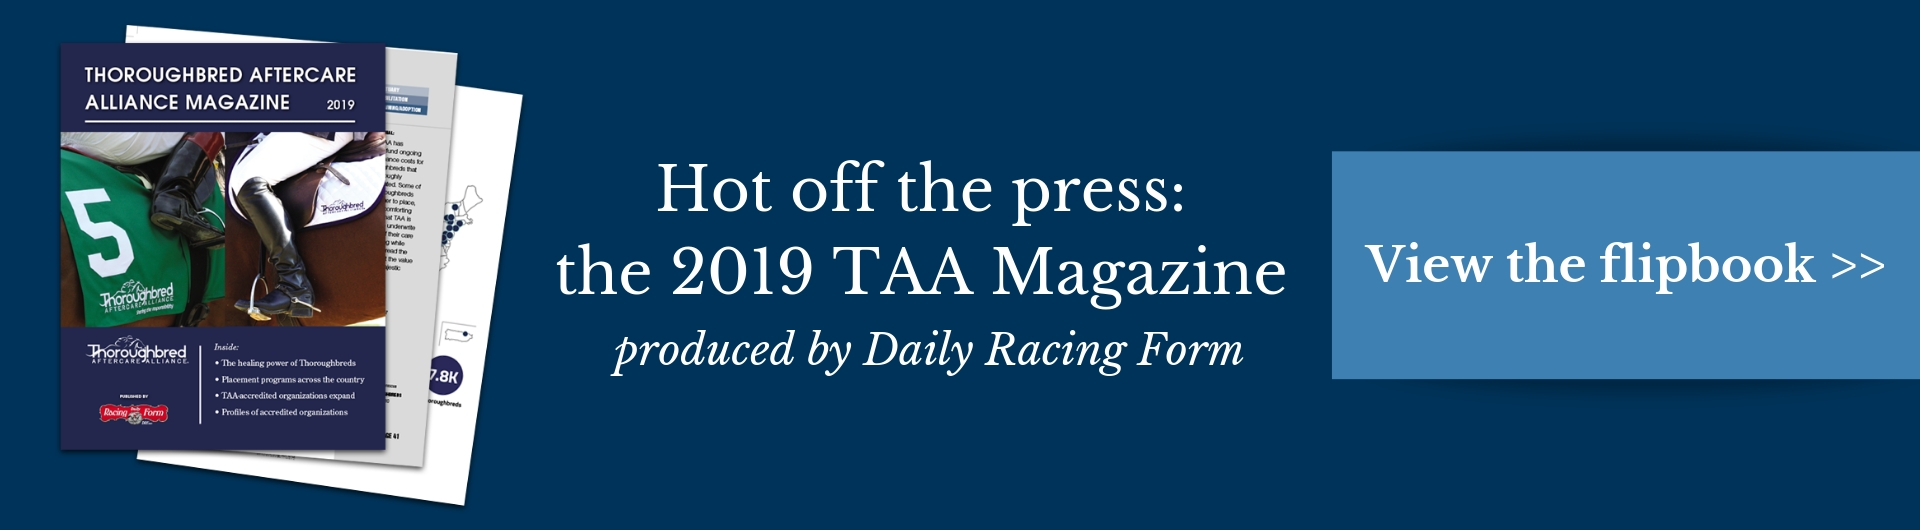 2019 TAA magazine header